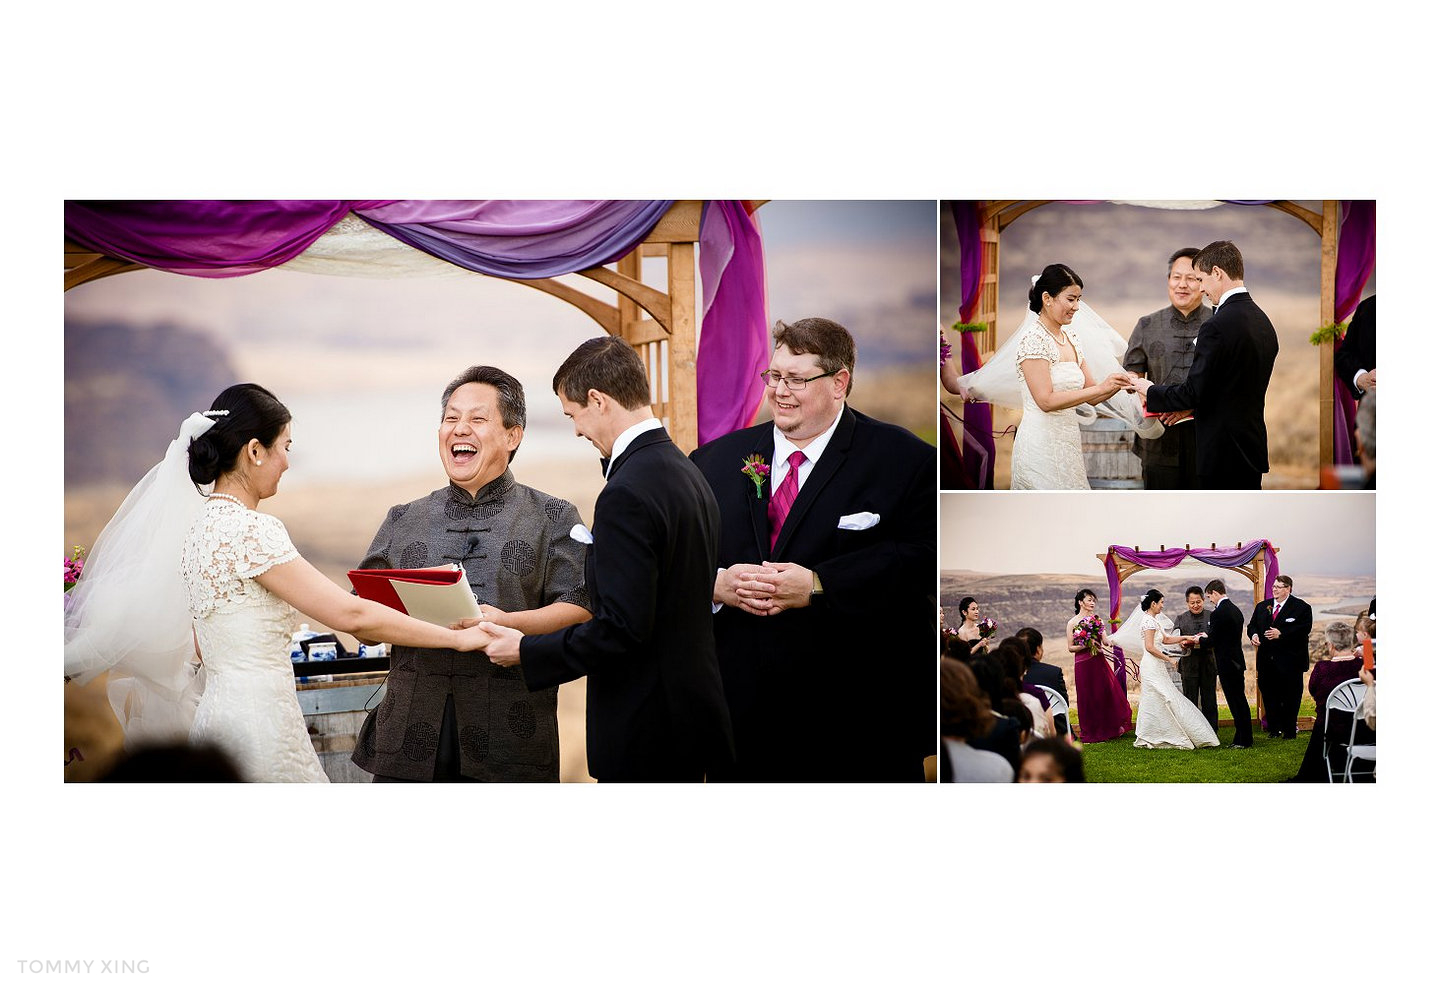 Tommy Xing Photography Seattle CAVE B ESTATE WINERY wedding 西雅图酒庄婚礼 29.jpg